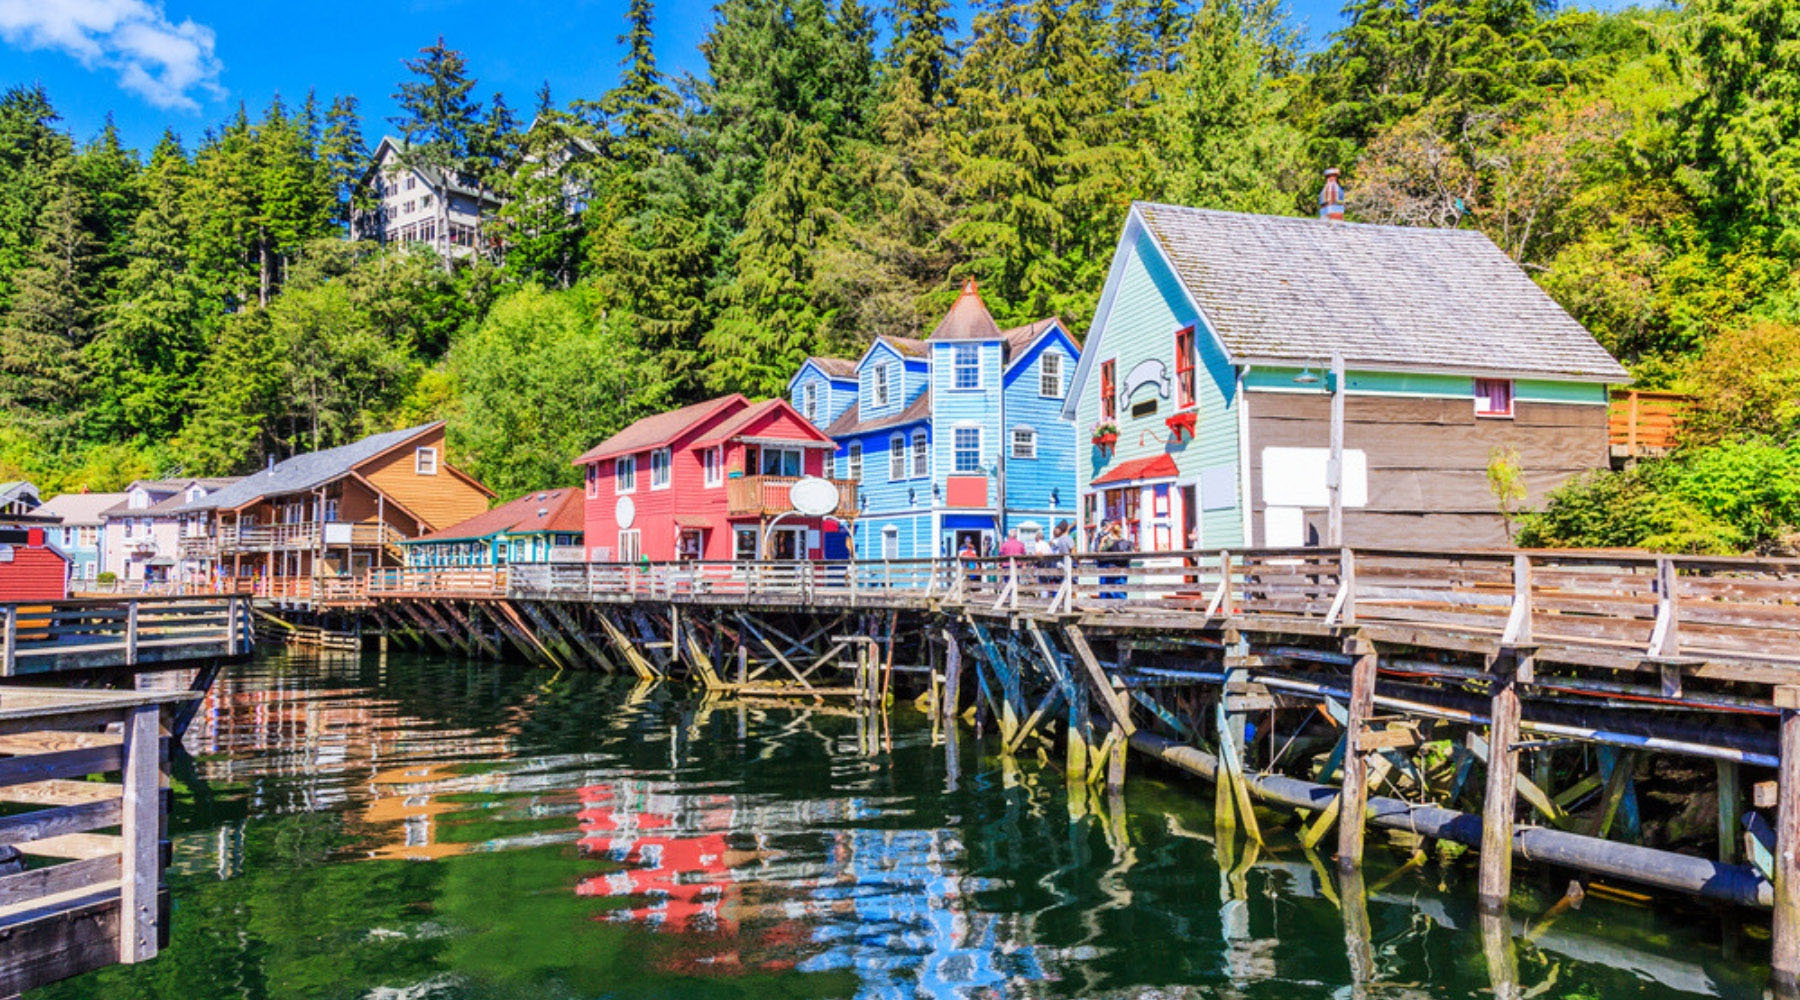 Alaska: Home of the world's best seafood